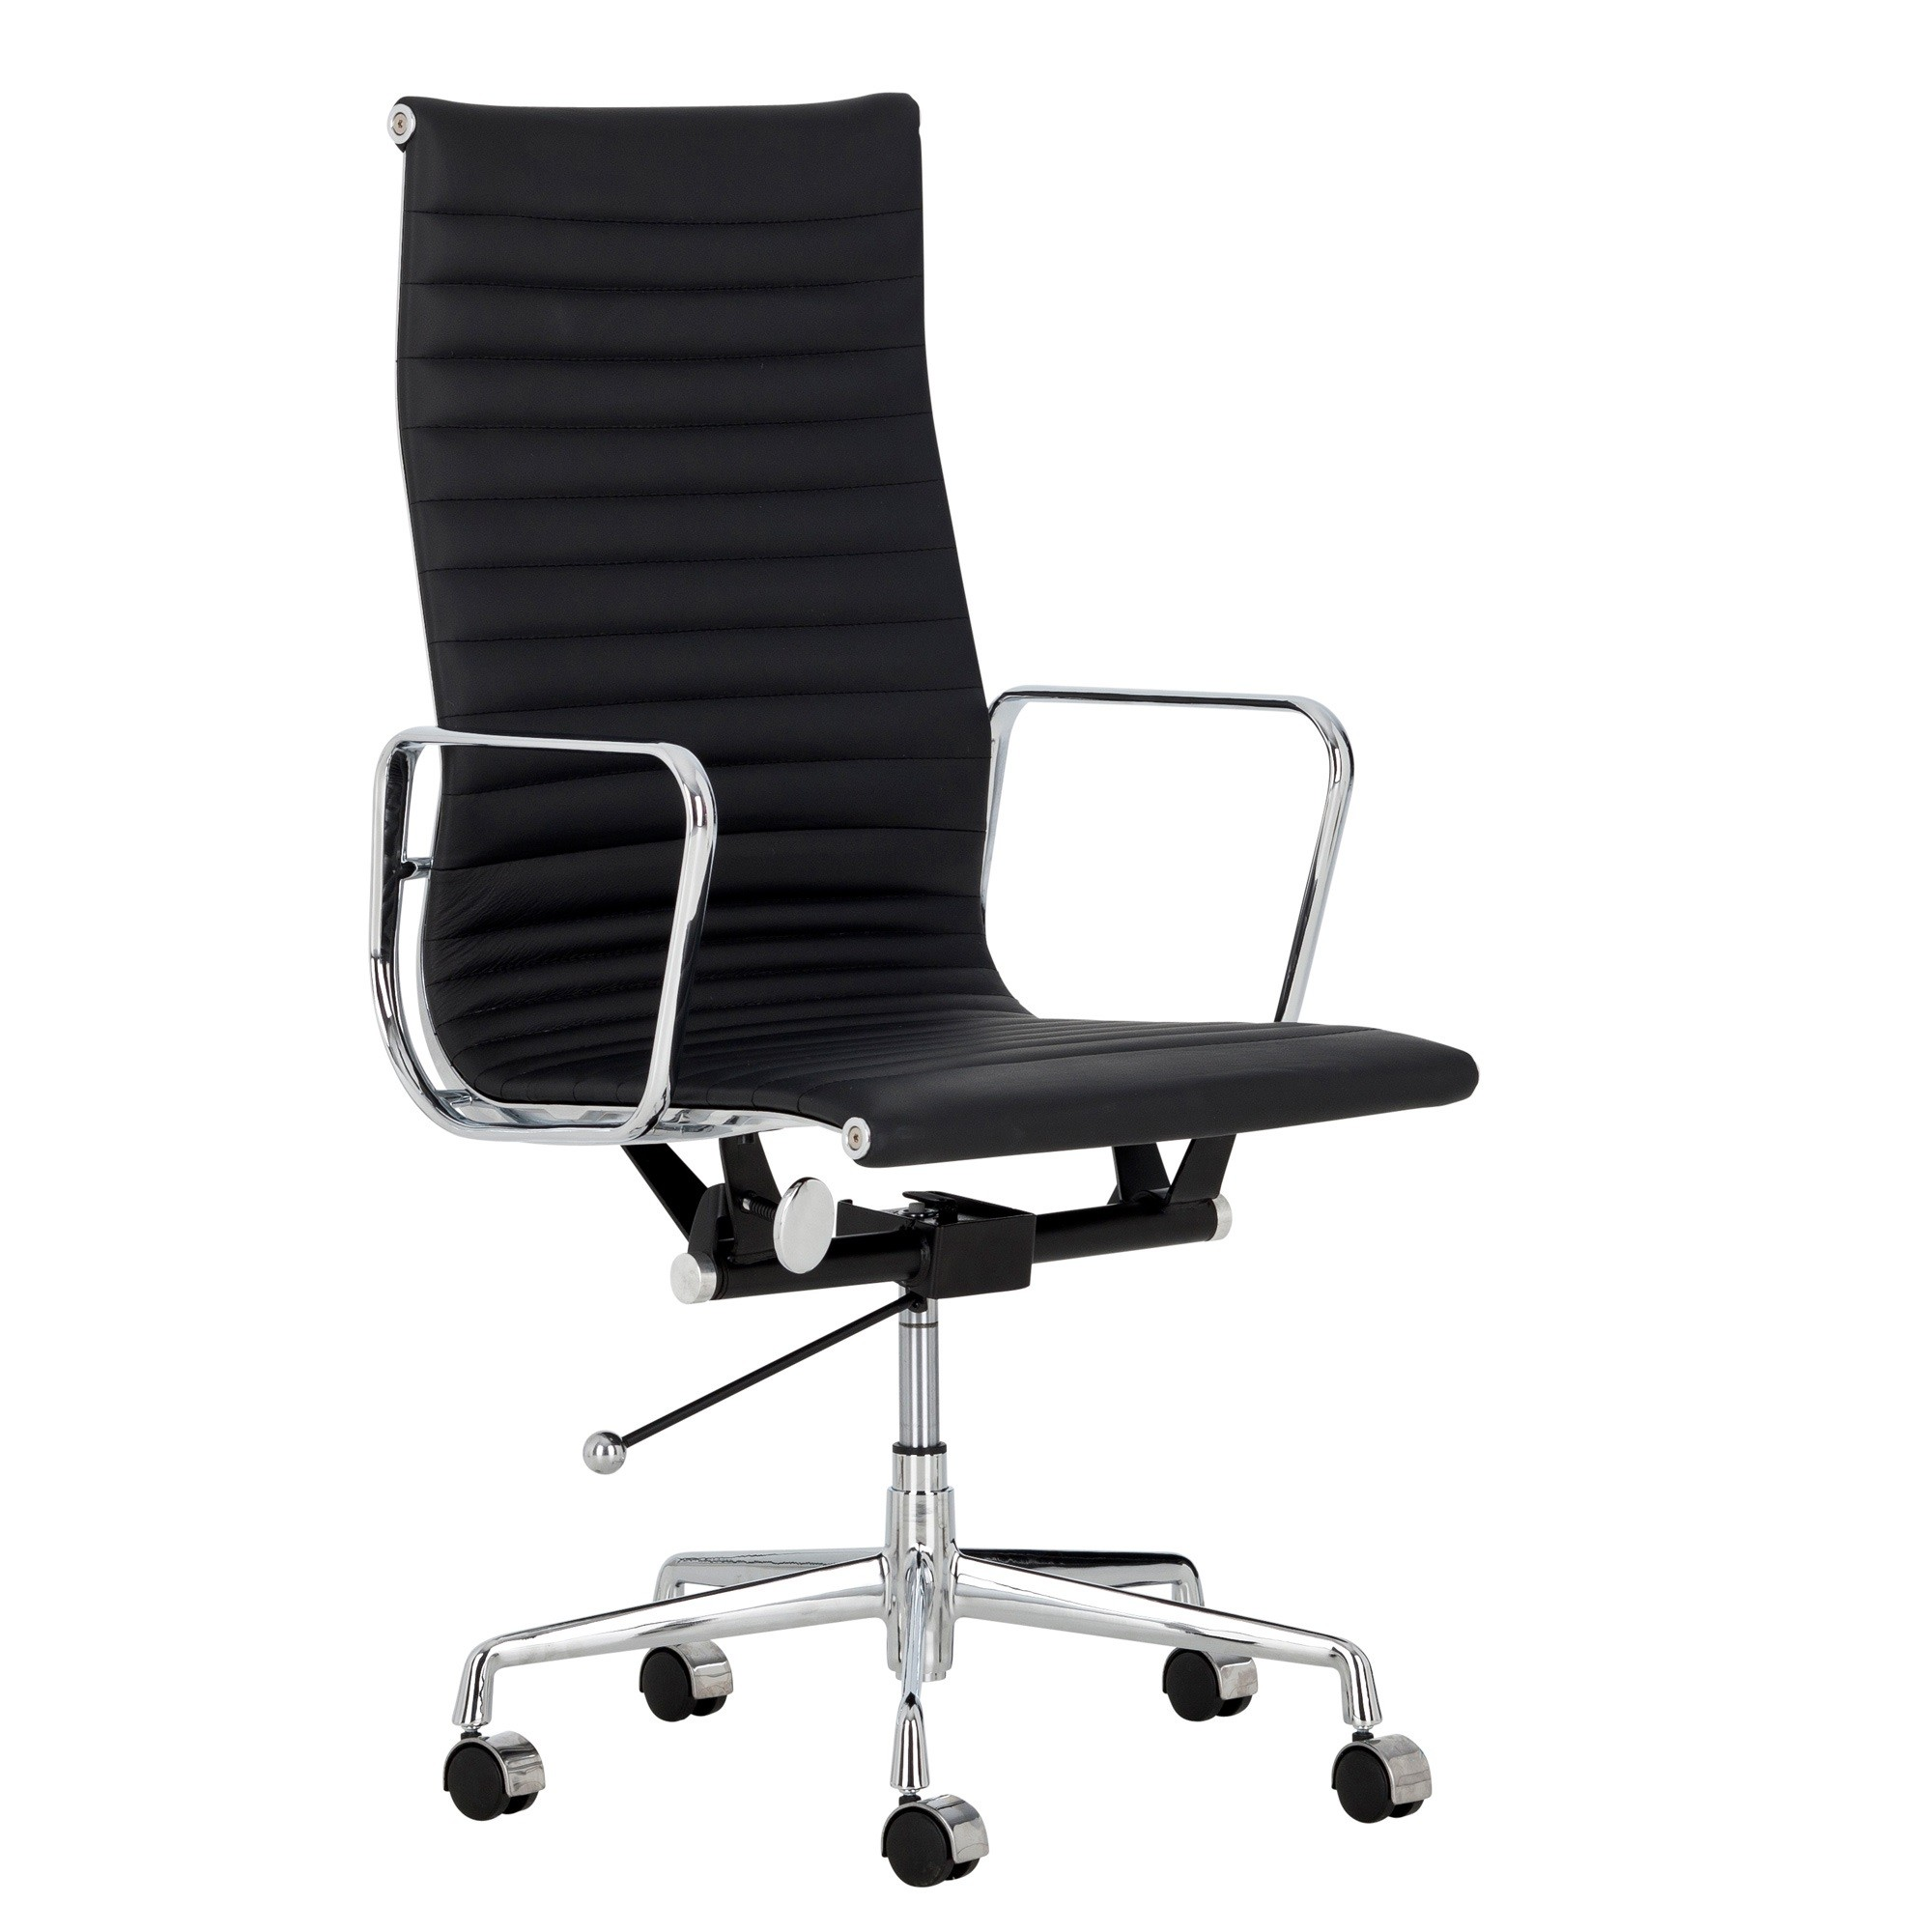 home office grey product category chair xcella chairs emario archives velvet